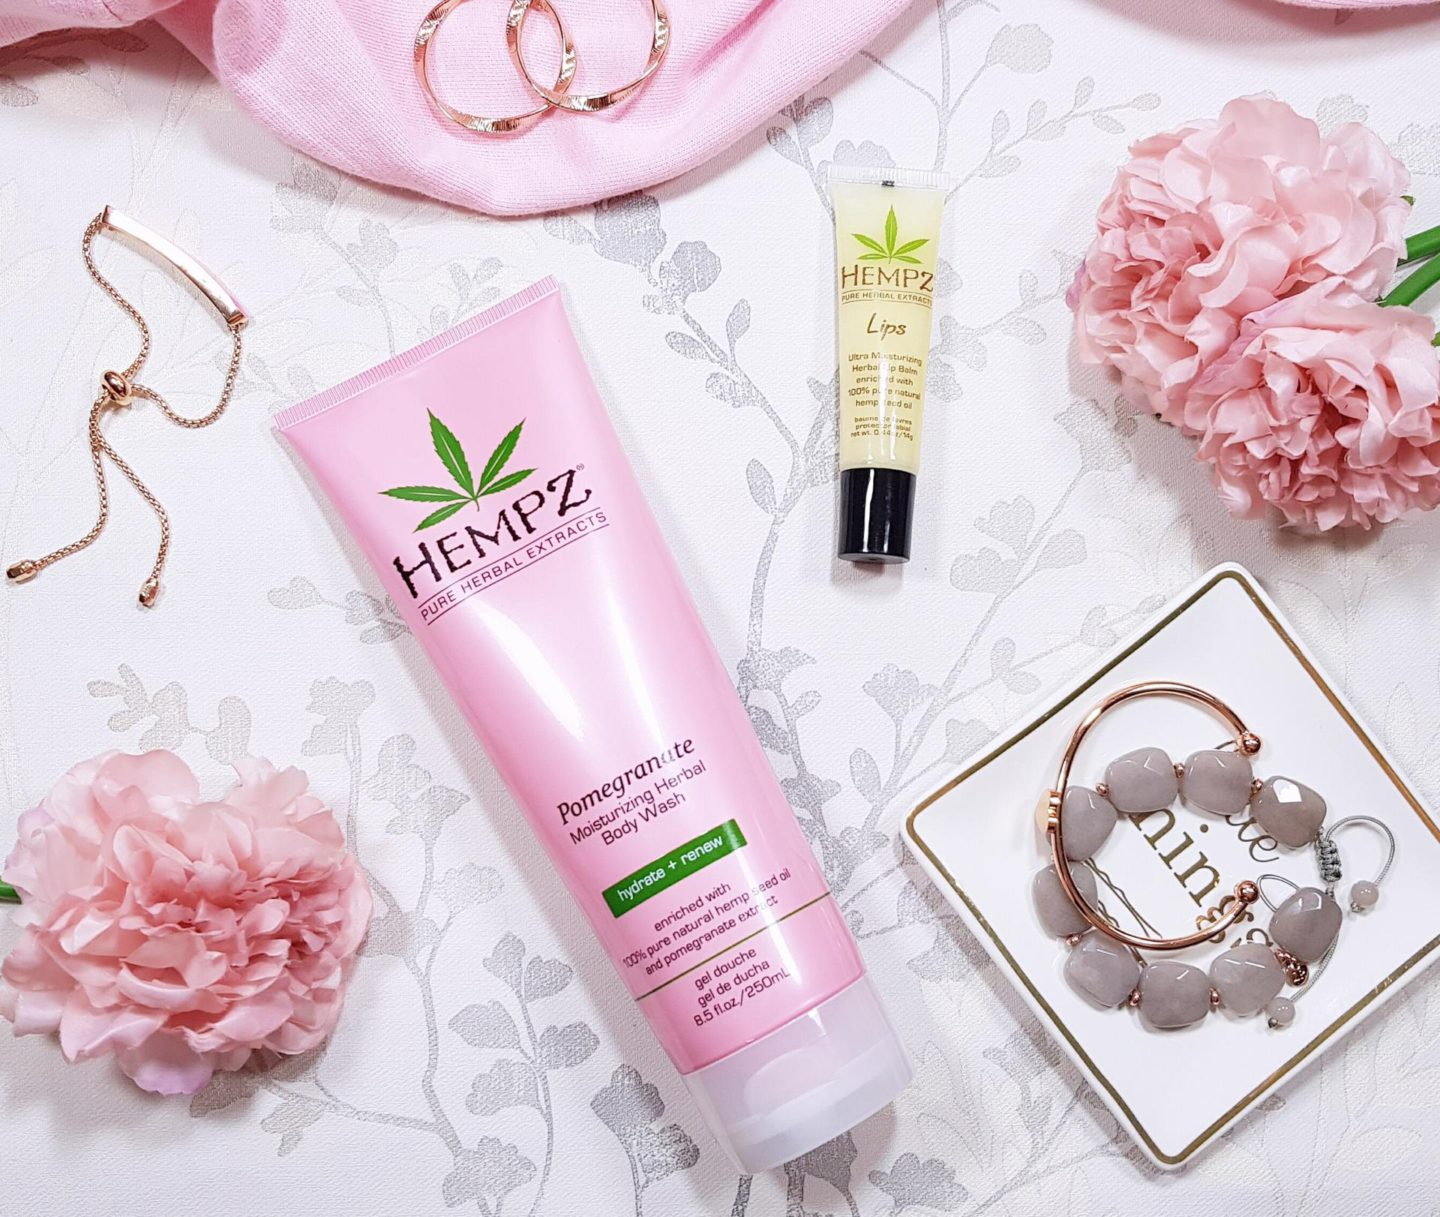 Hempz Beauty Shower Gel and Lip Balm